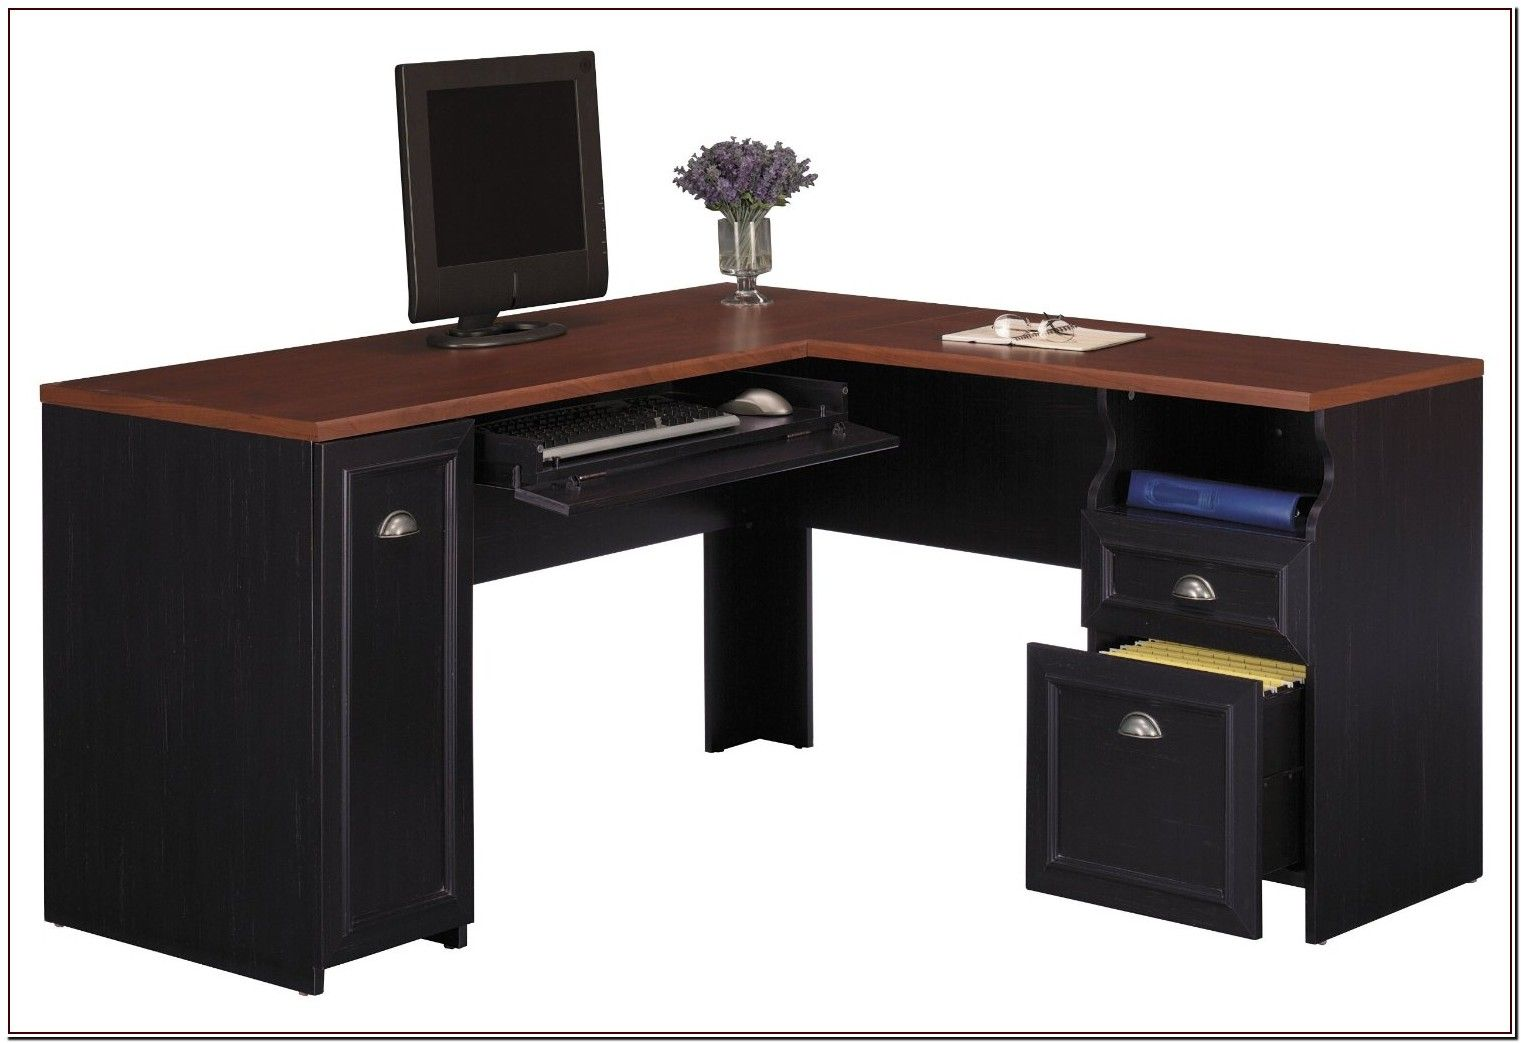 58 Reference Of Black Chair Desk In 2020 L Shaped Desk Small Office Furniture L Shaped Office Desk